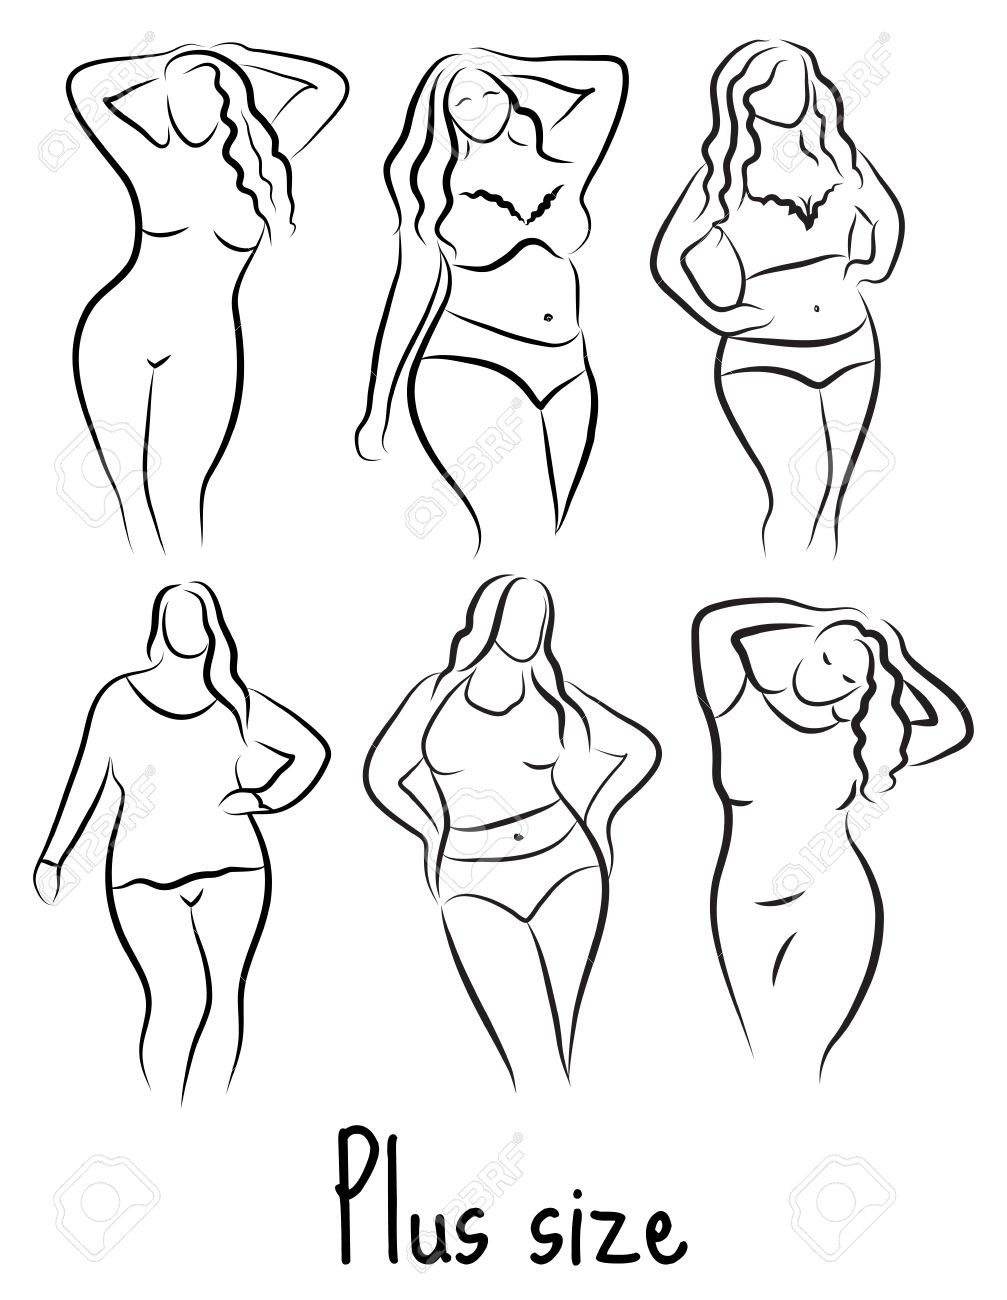 1007x1300 Plus Size Model Woman Sketch. Hand Drawing Style. Curvy Body